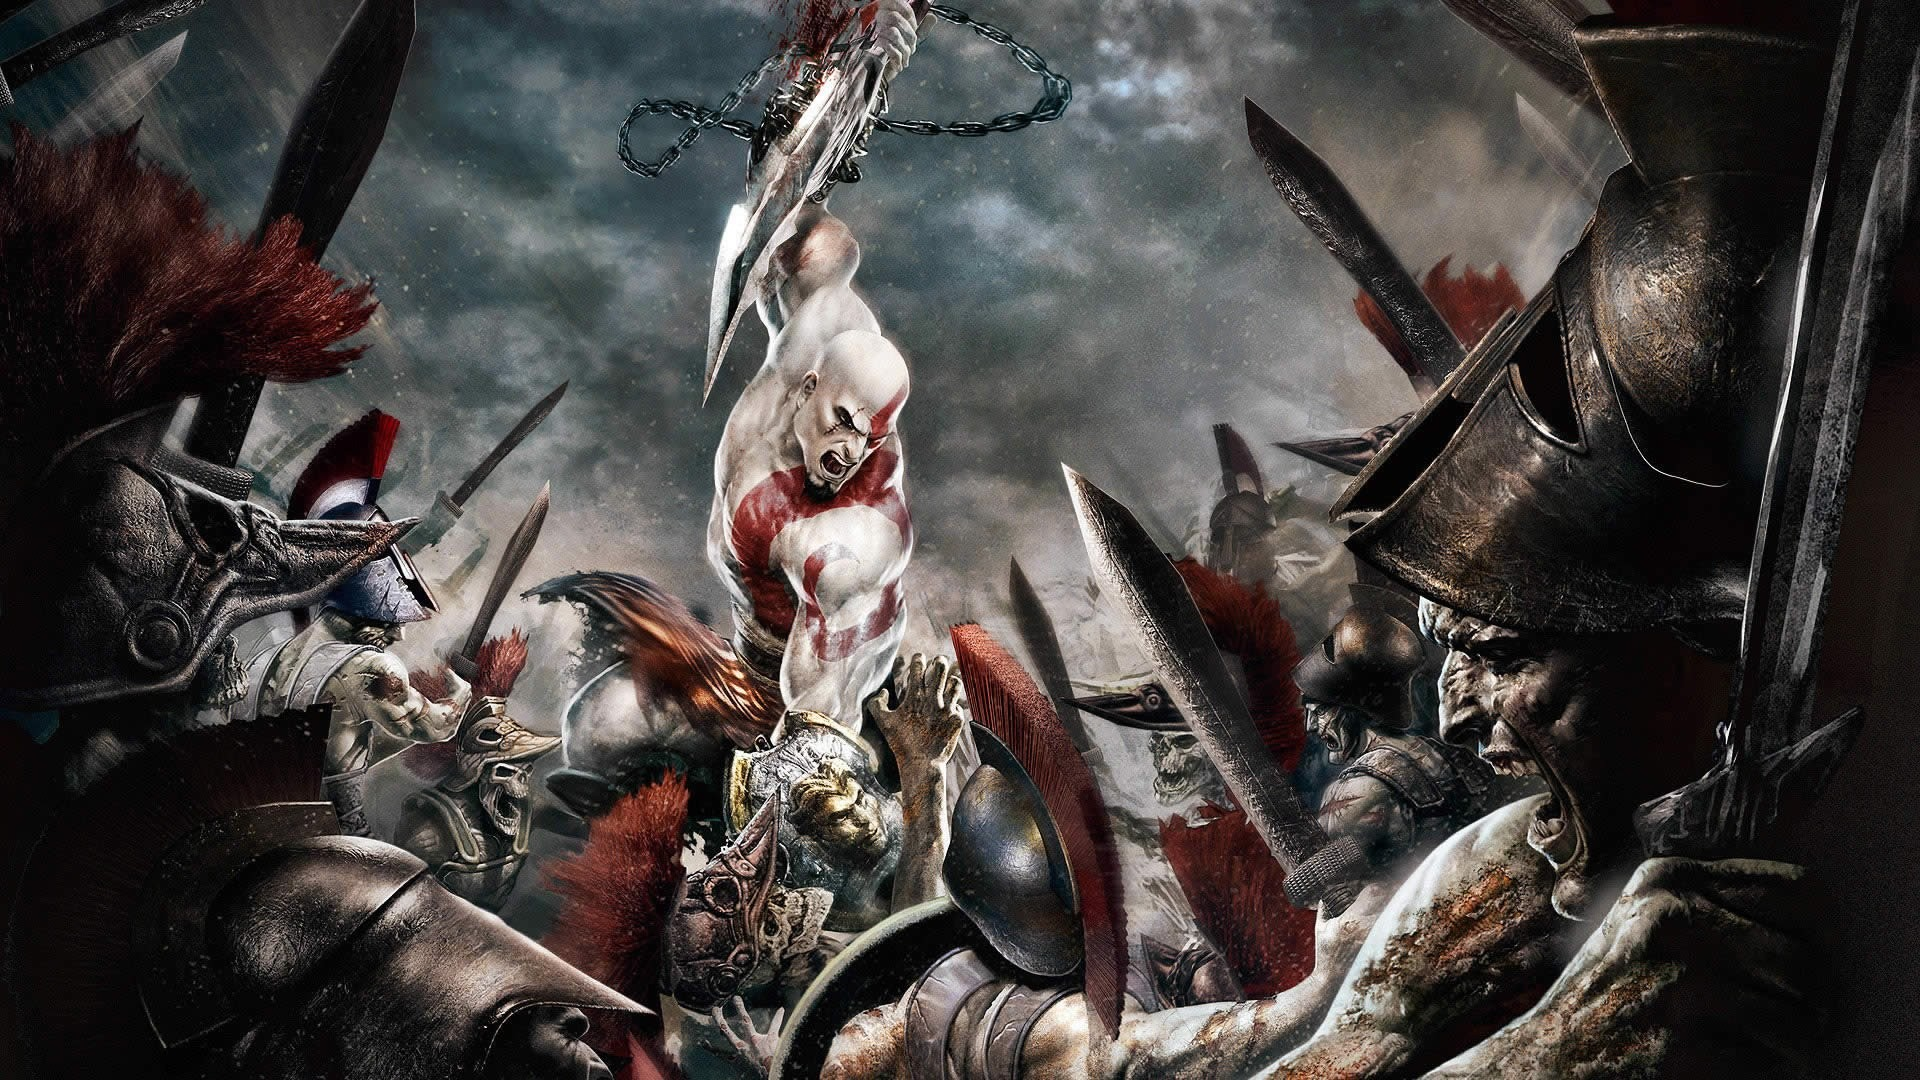 1920x1080 undefined Kratos God Of War Wallpapers Wallpapers)